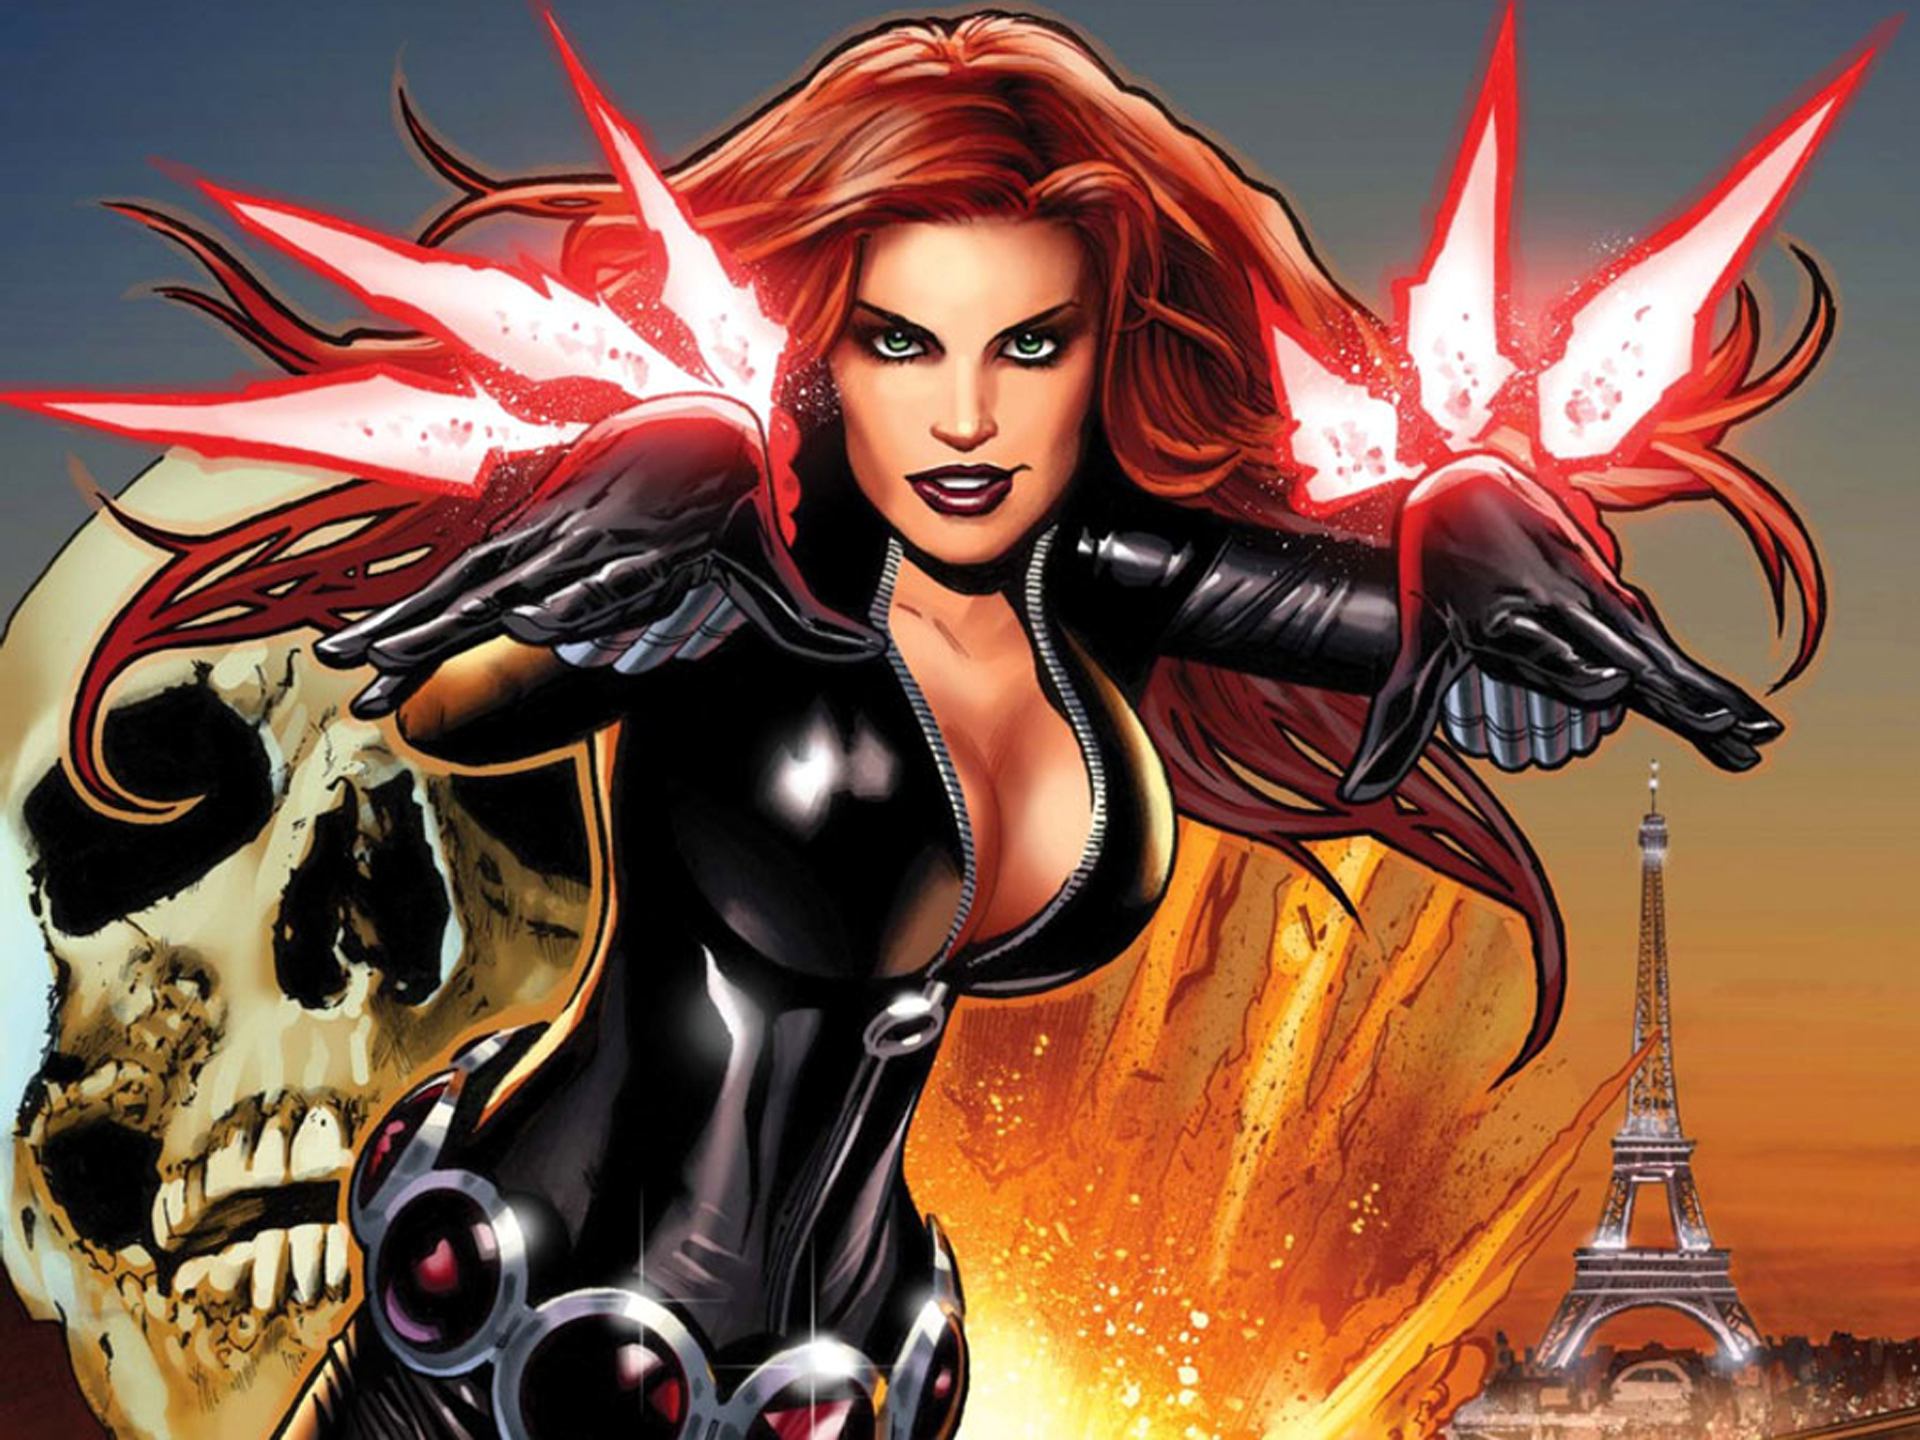 The List: Top 10 Marvel Superheroines | HeroMachine Character